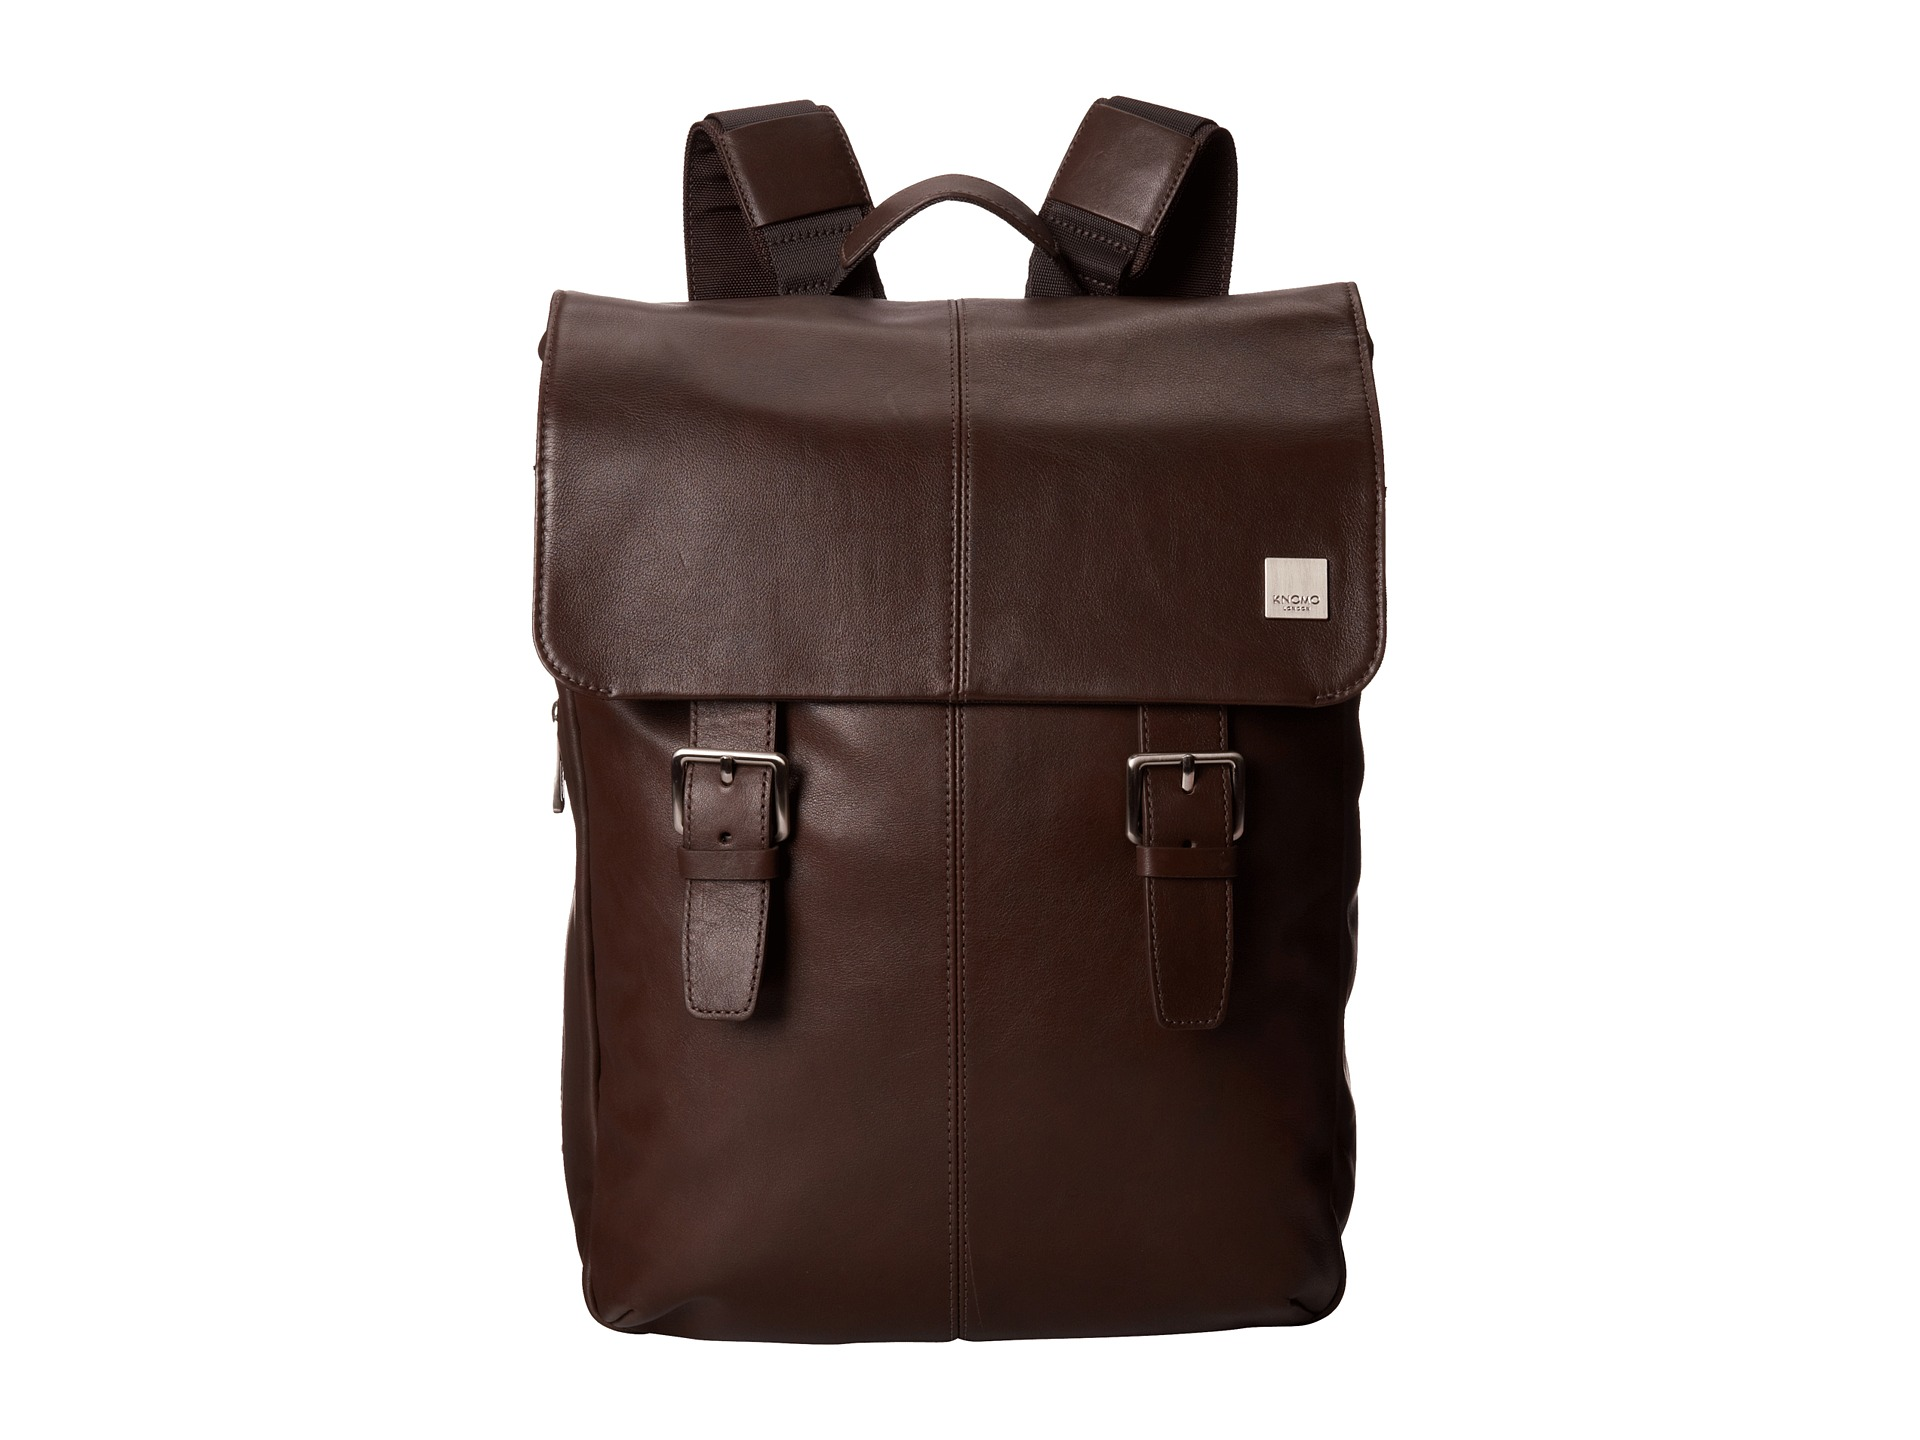 KNOMO London Hudson Leather Laptop Backpack  Zappos.com Free Shipping